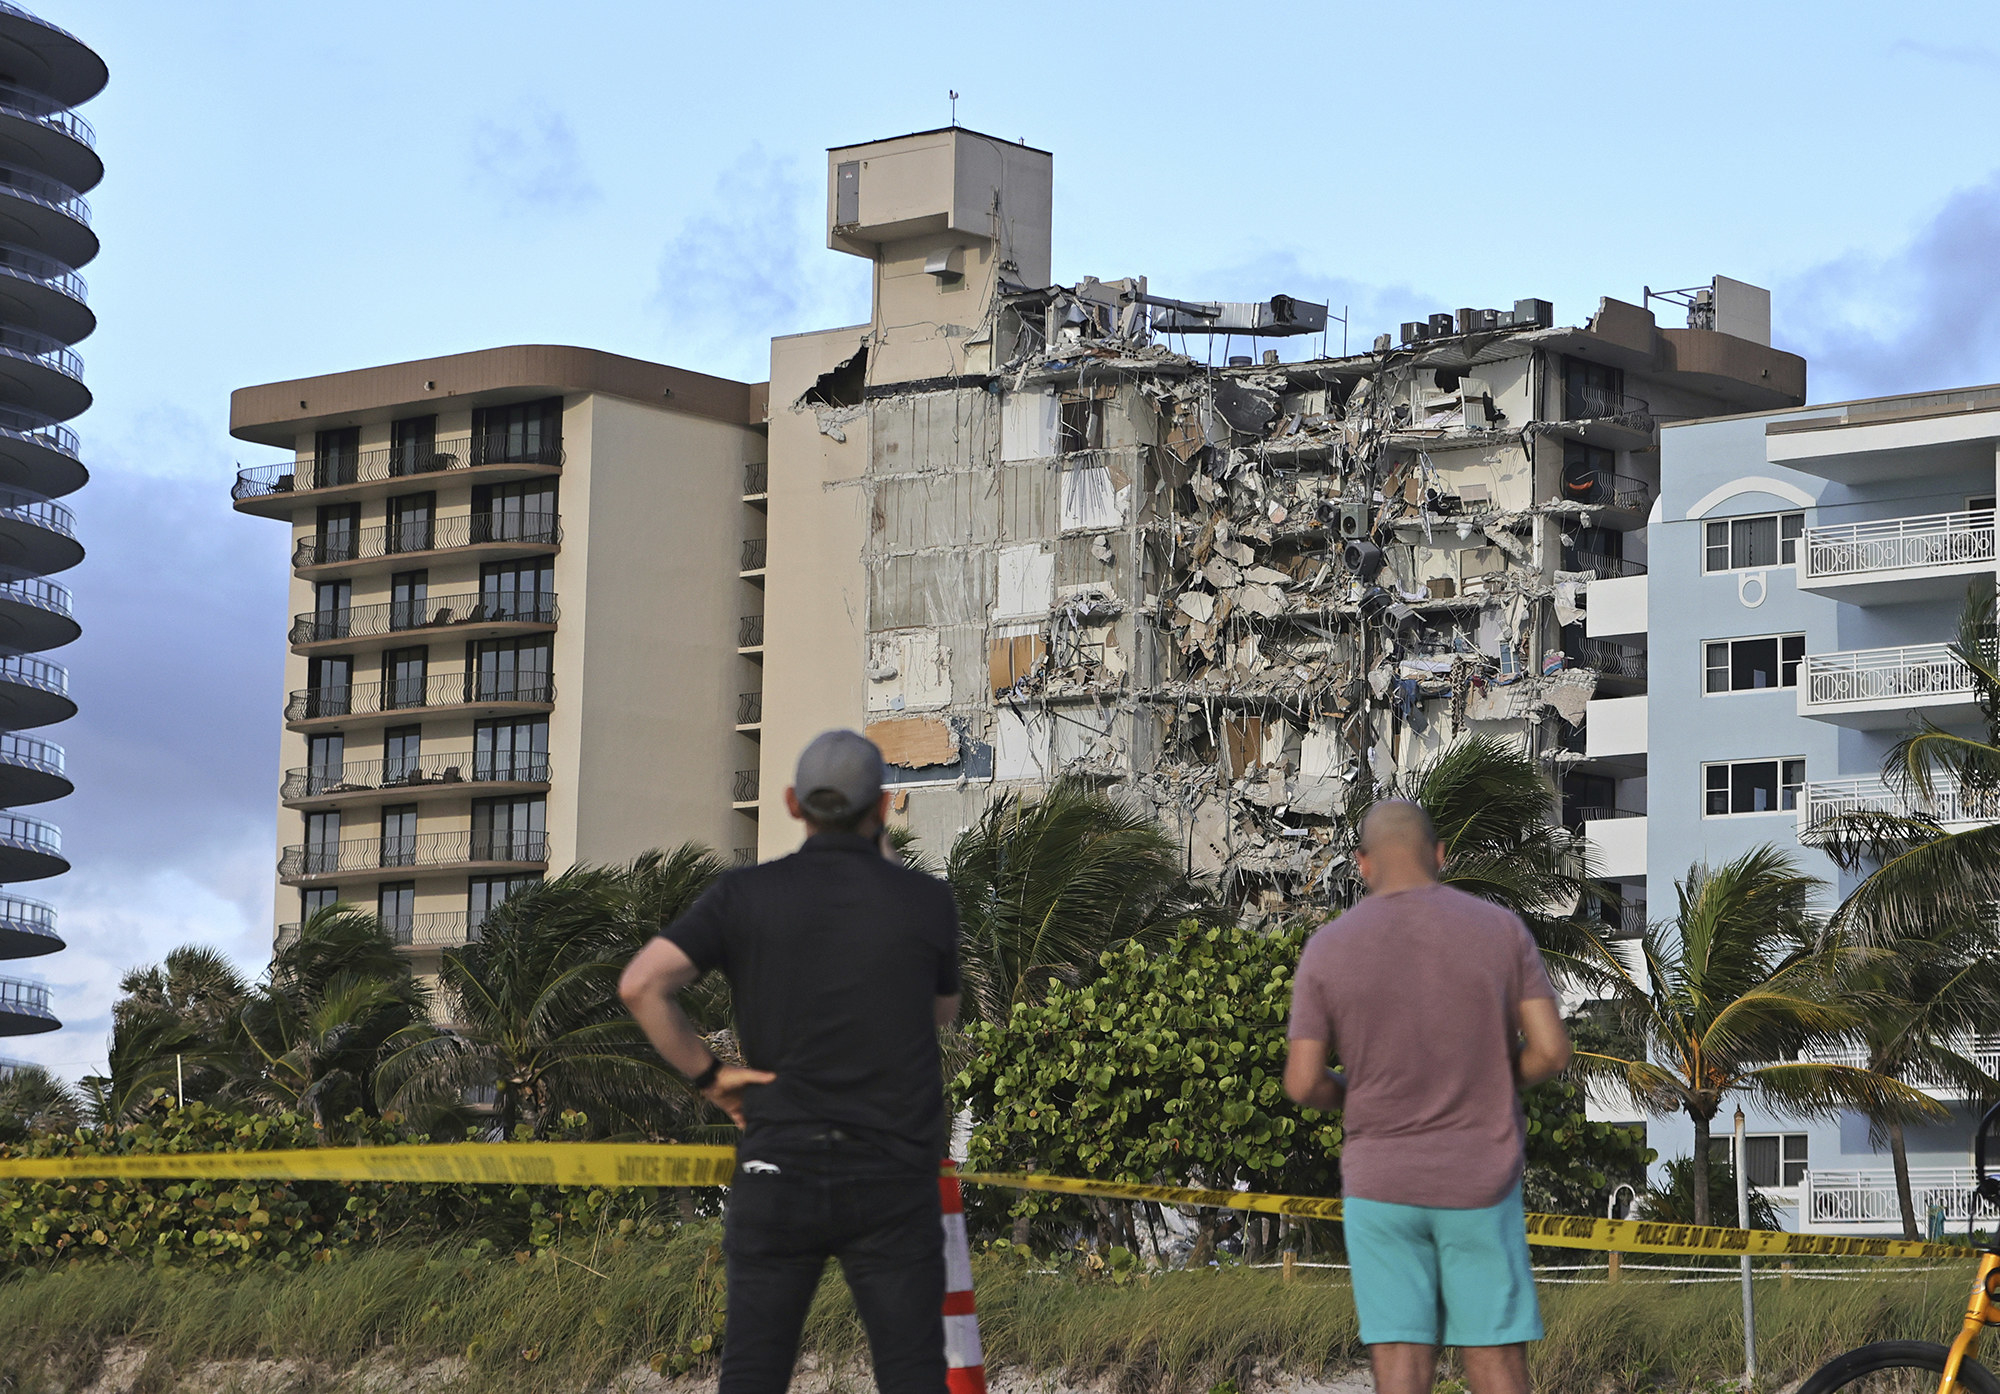 Two men from behind look at a partially collapsed building from behind caution tape